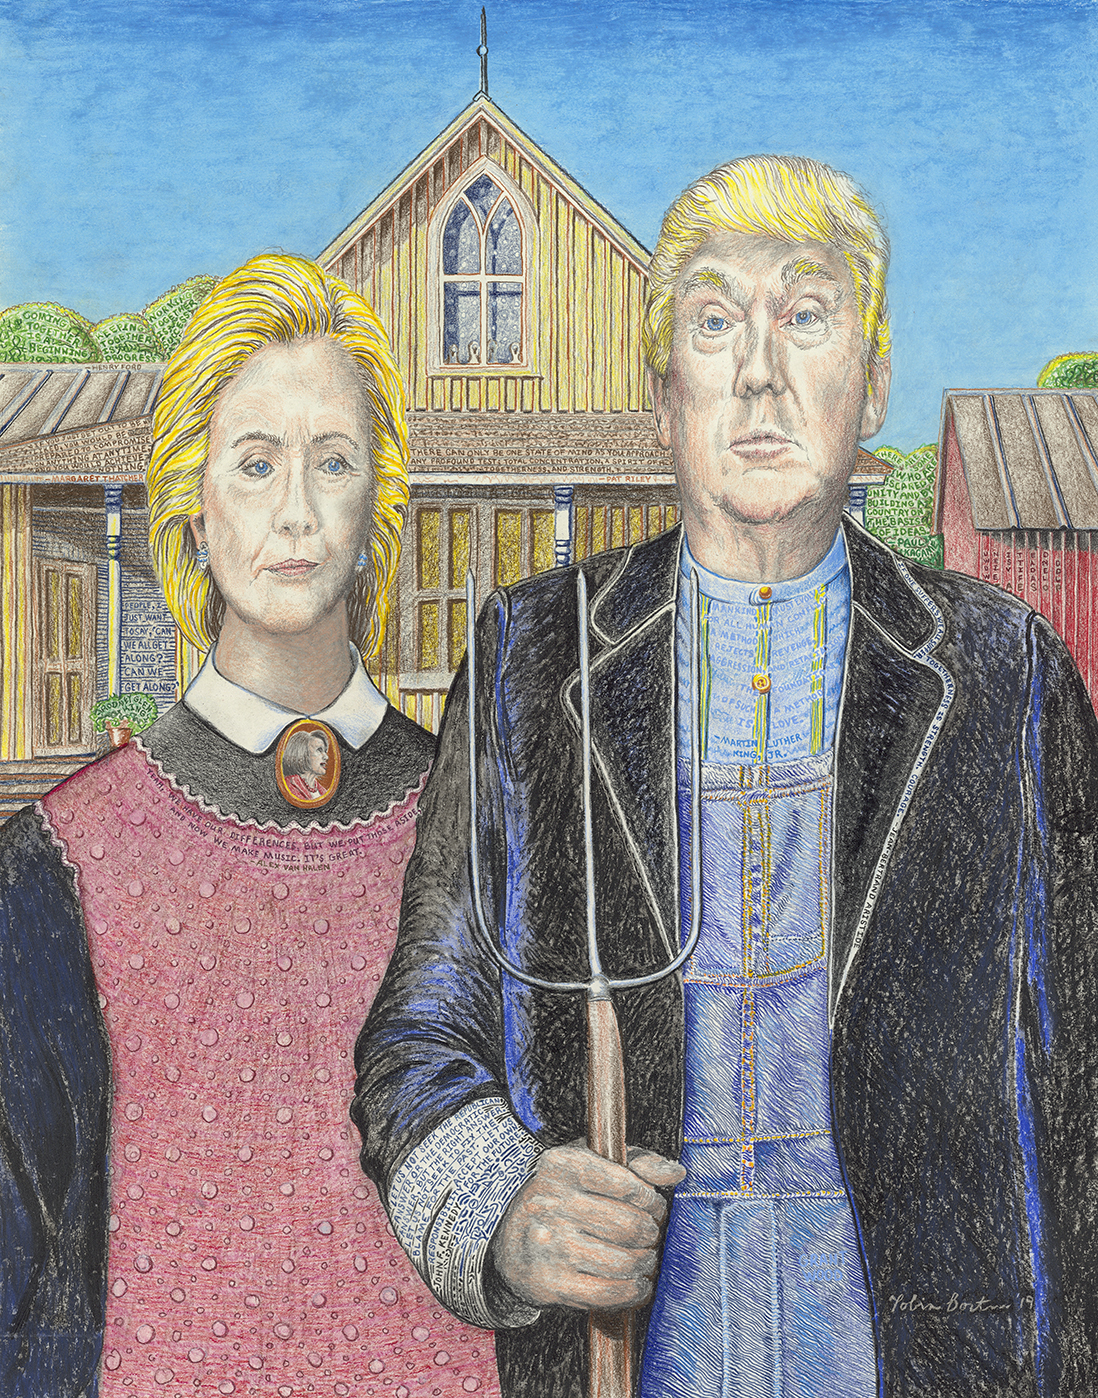 from American Gothic 11x14 thumb